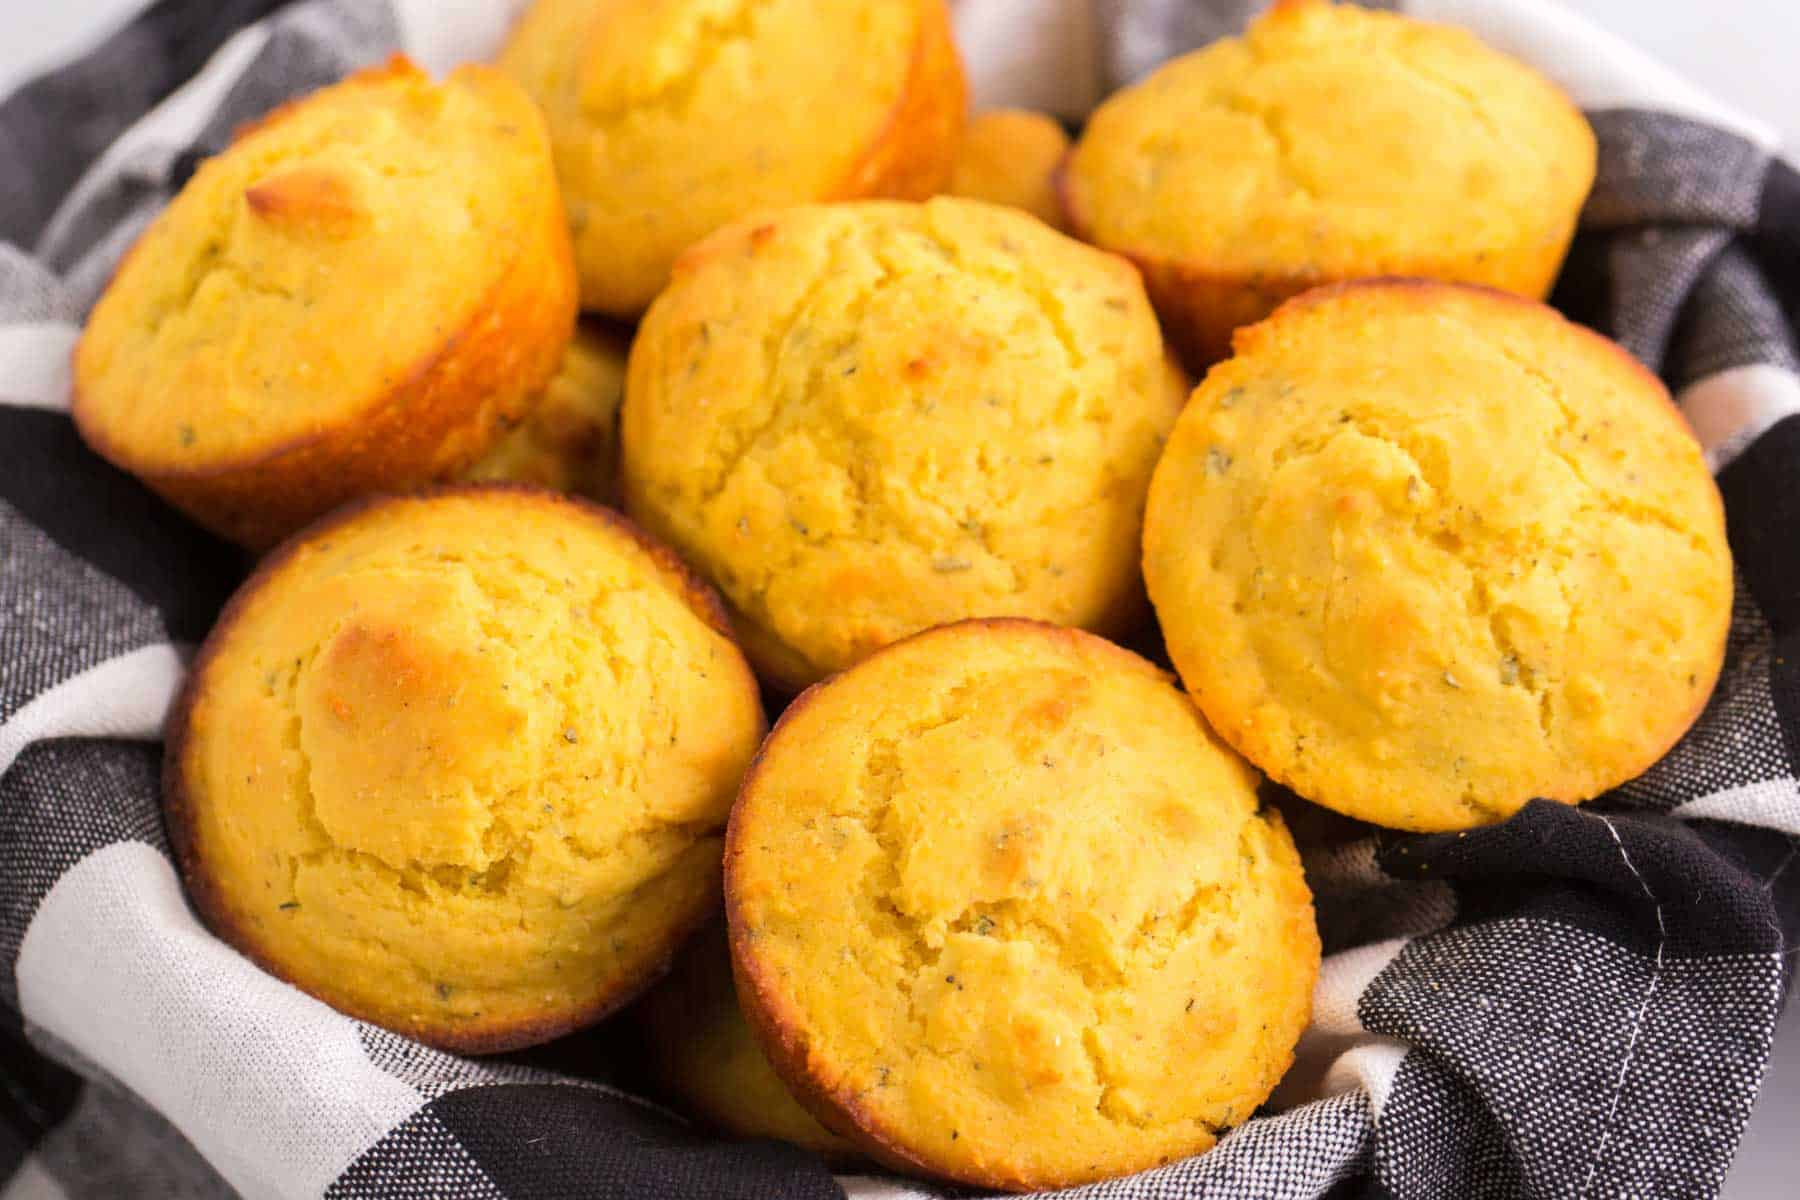 gluten free cornbread muffins in a black and white plaid cloth napkin-lined basket